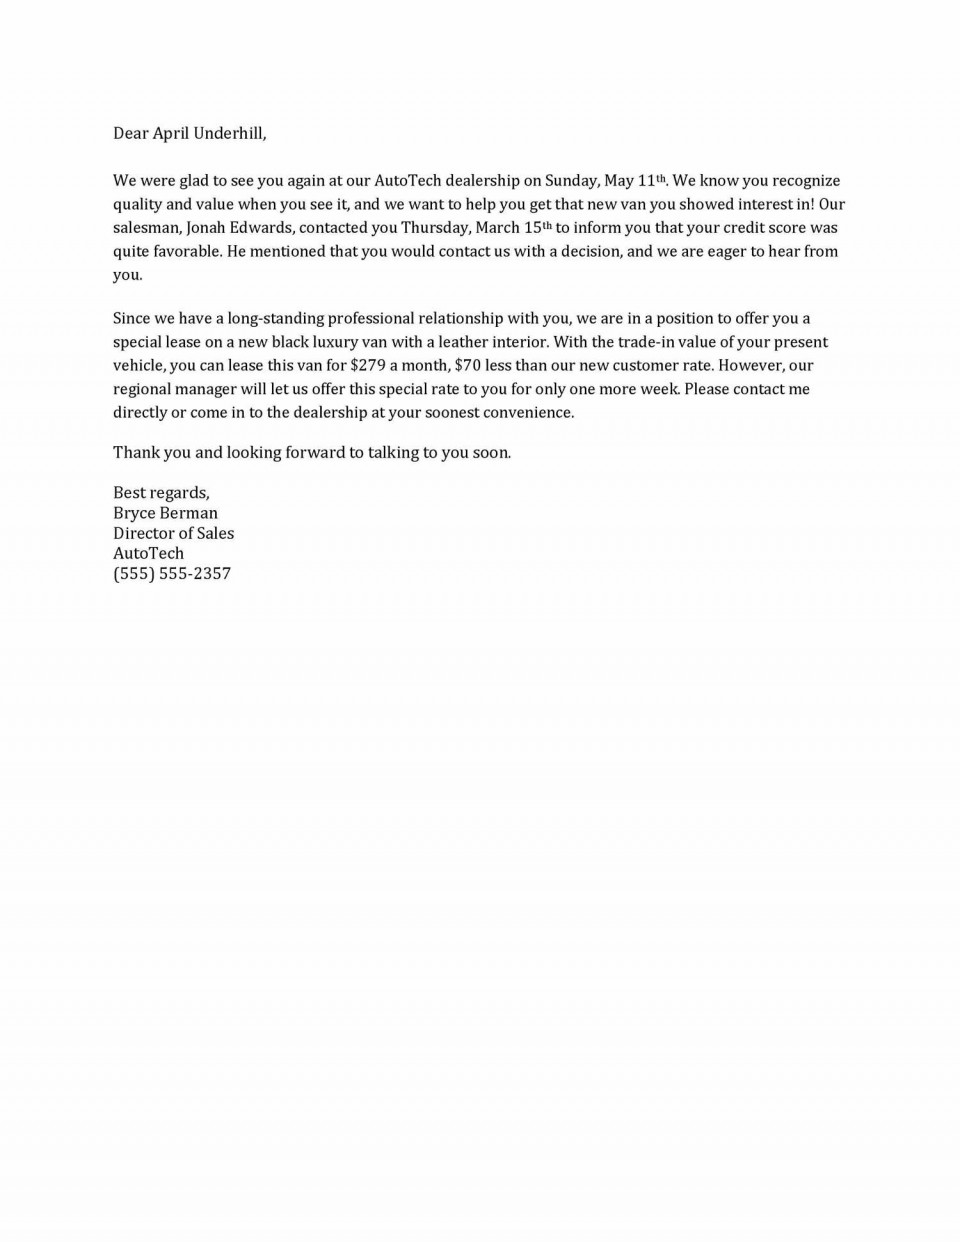 009 Impressive Follow Up Email Template To Client Sample  Simple Letter For Payment After Sending Proposal960